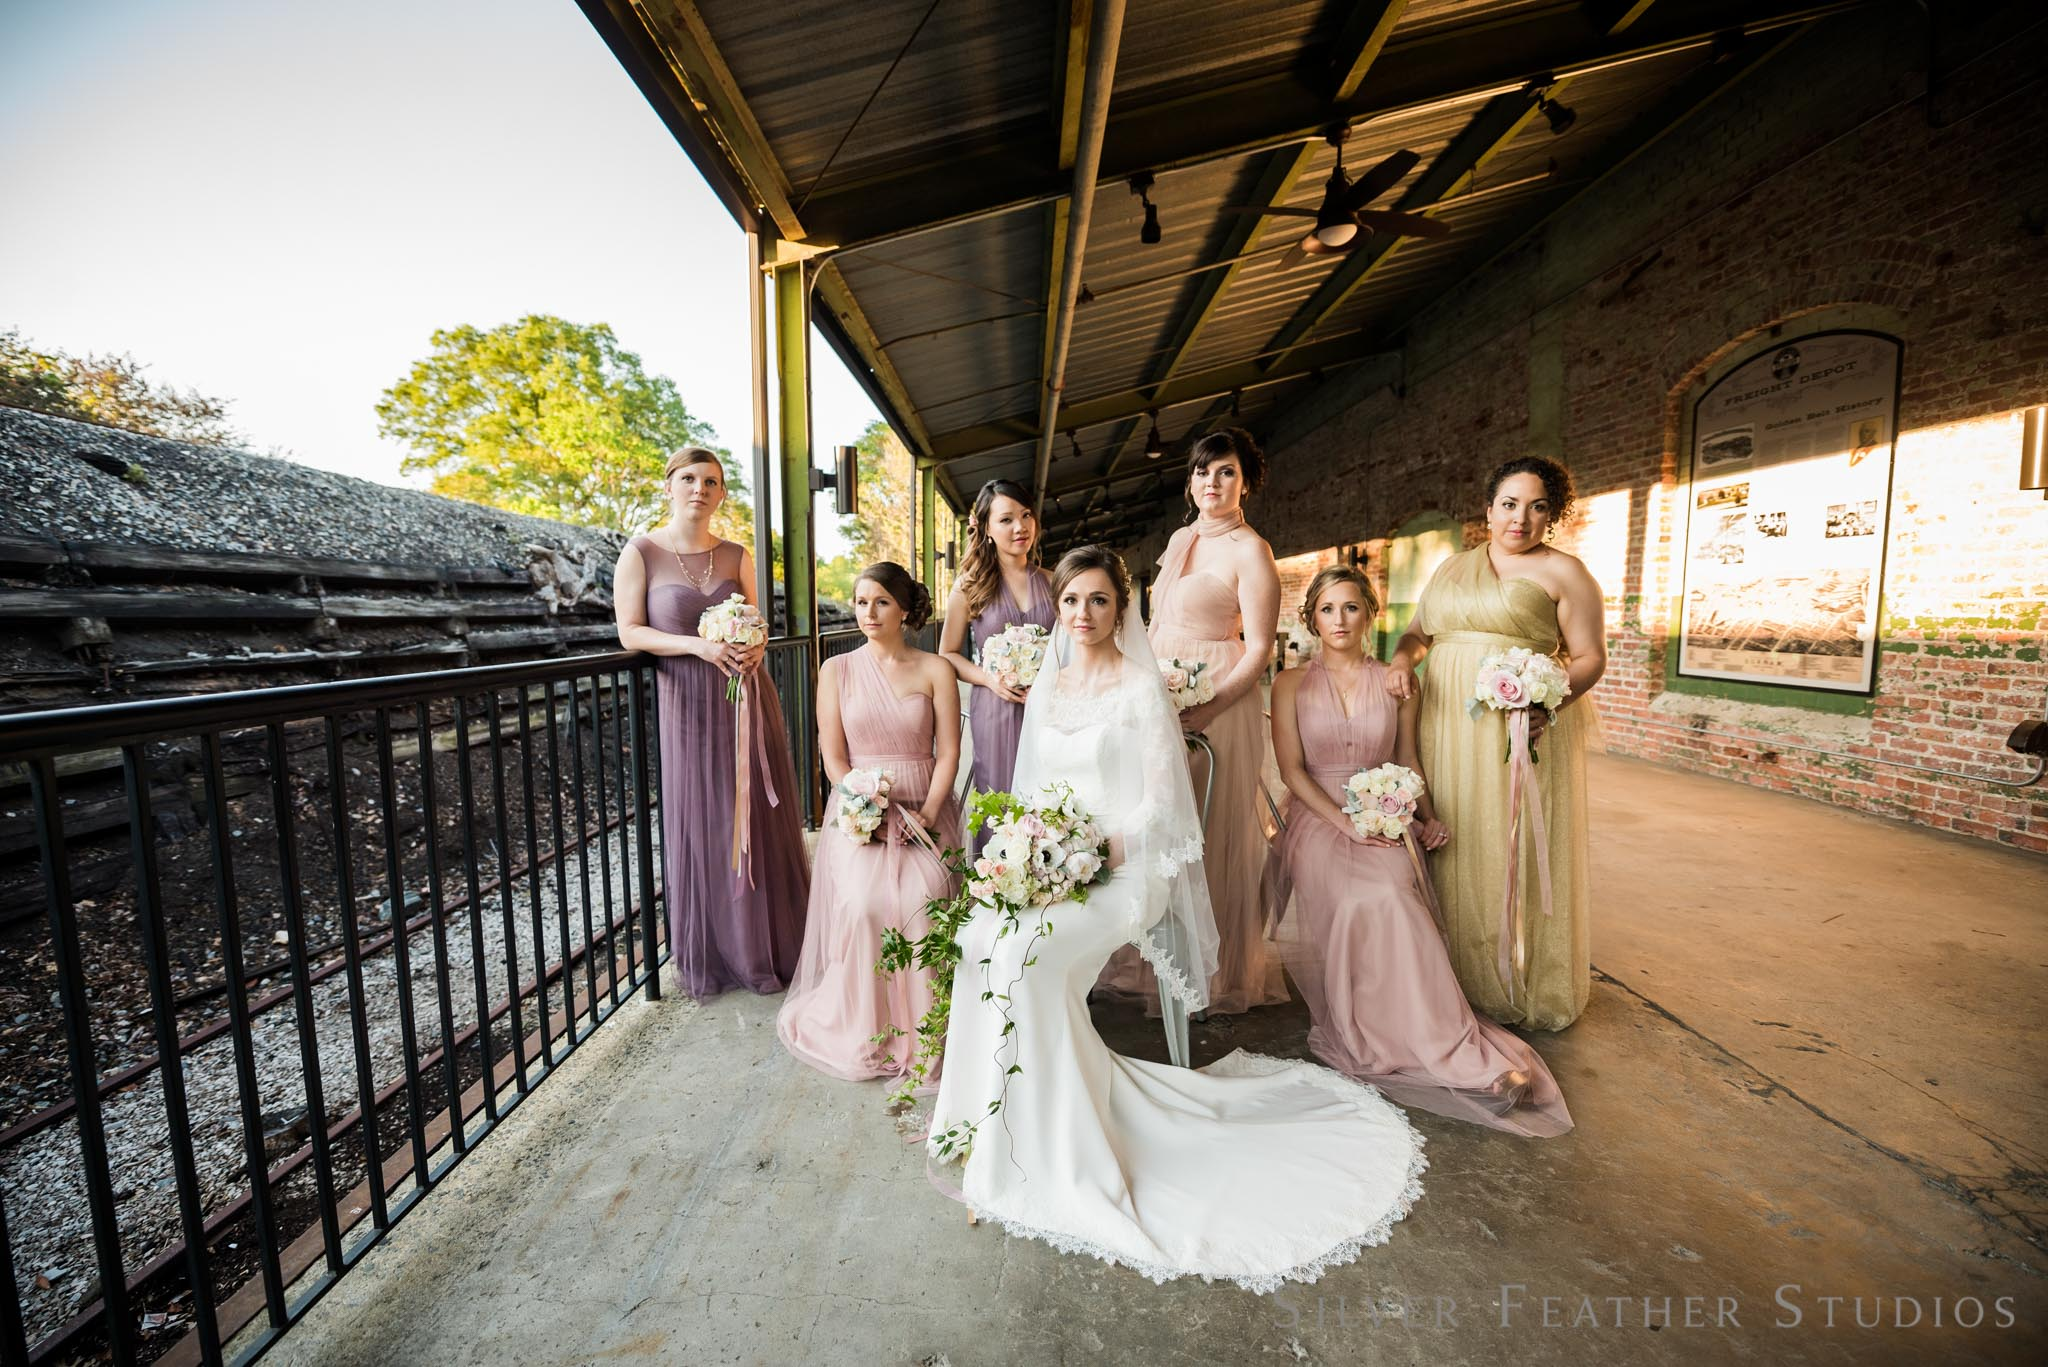 multi-colored bridesmaid dresses in rose pink, mauve, and champagne. © Silver Feather Studios, preferred vendor at the Cotton Room